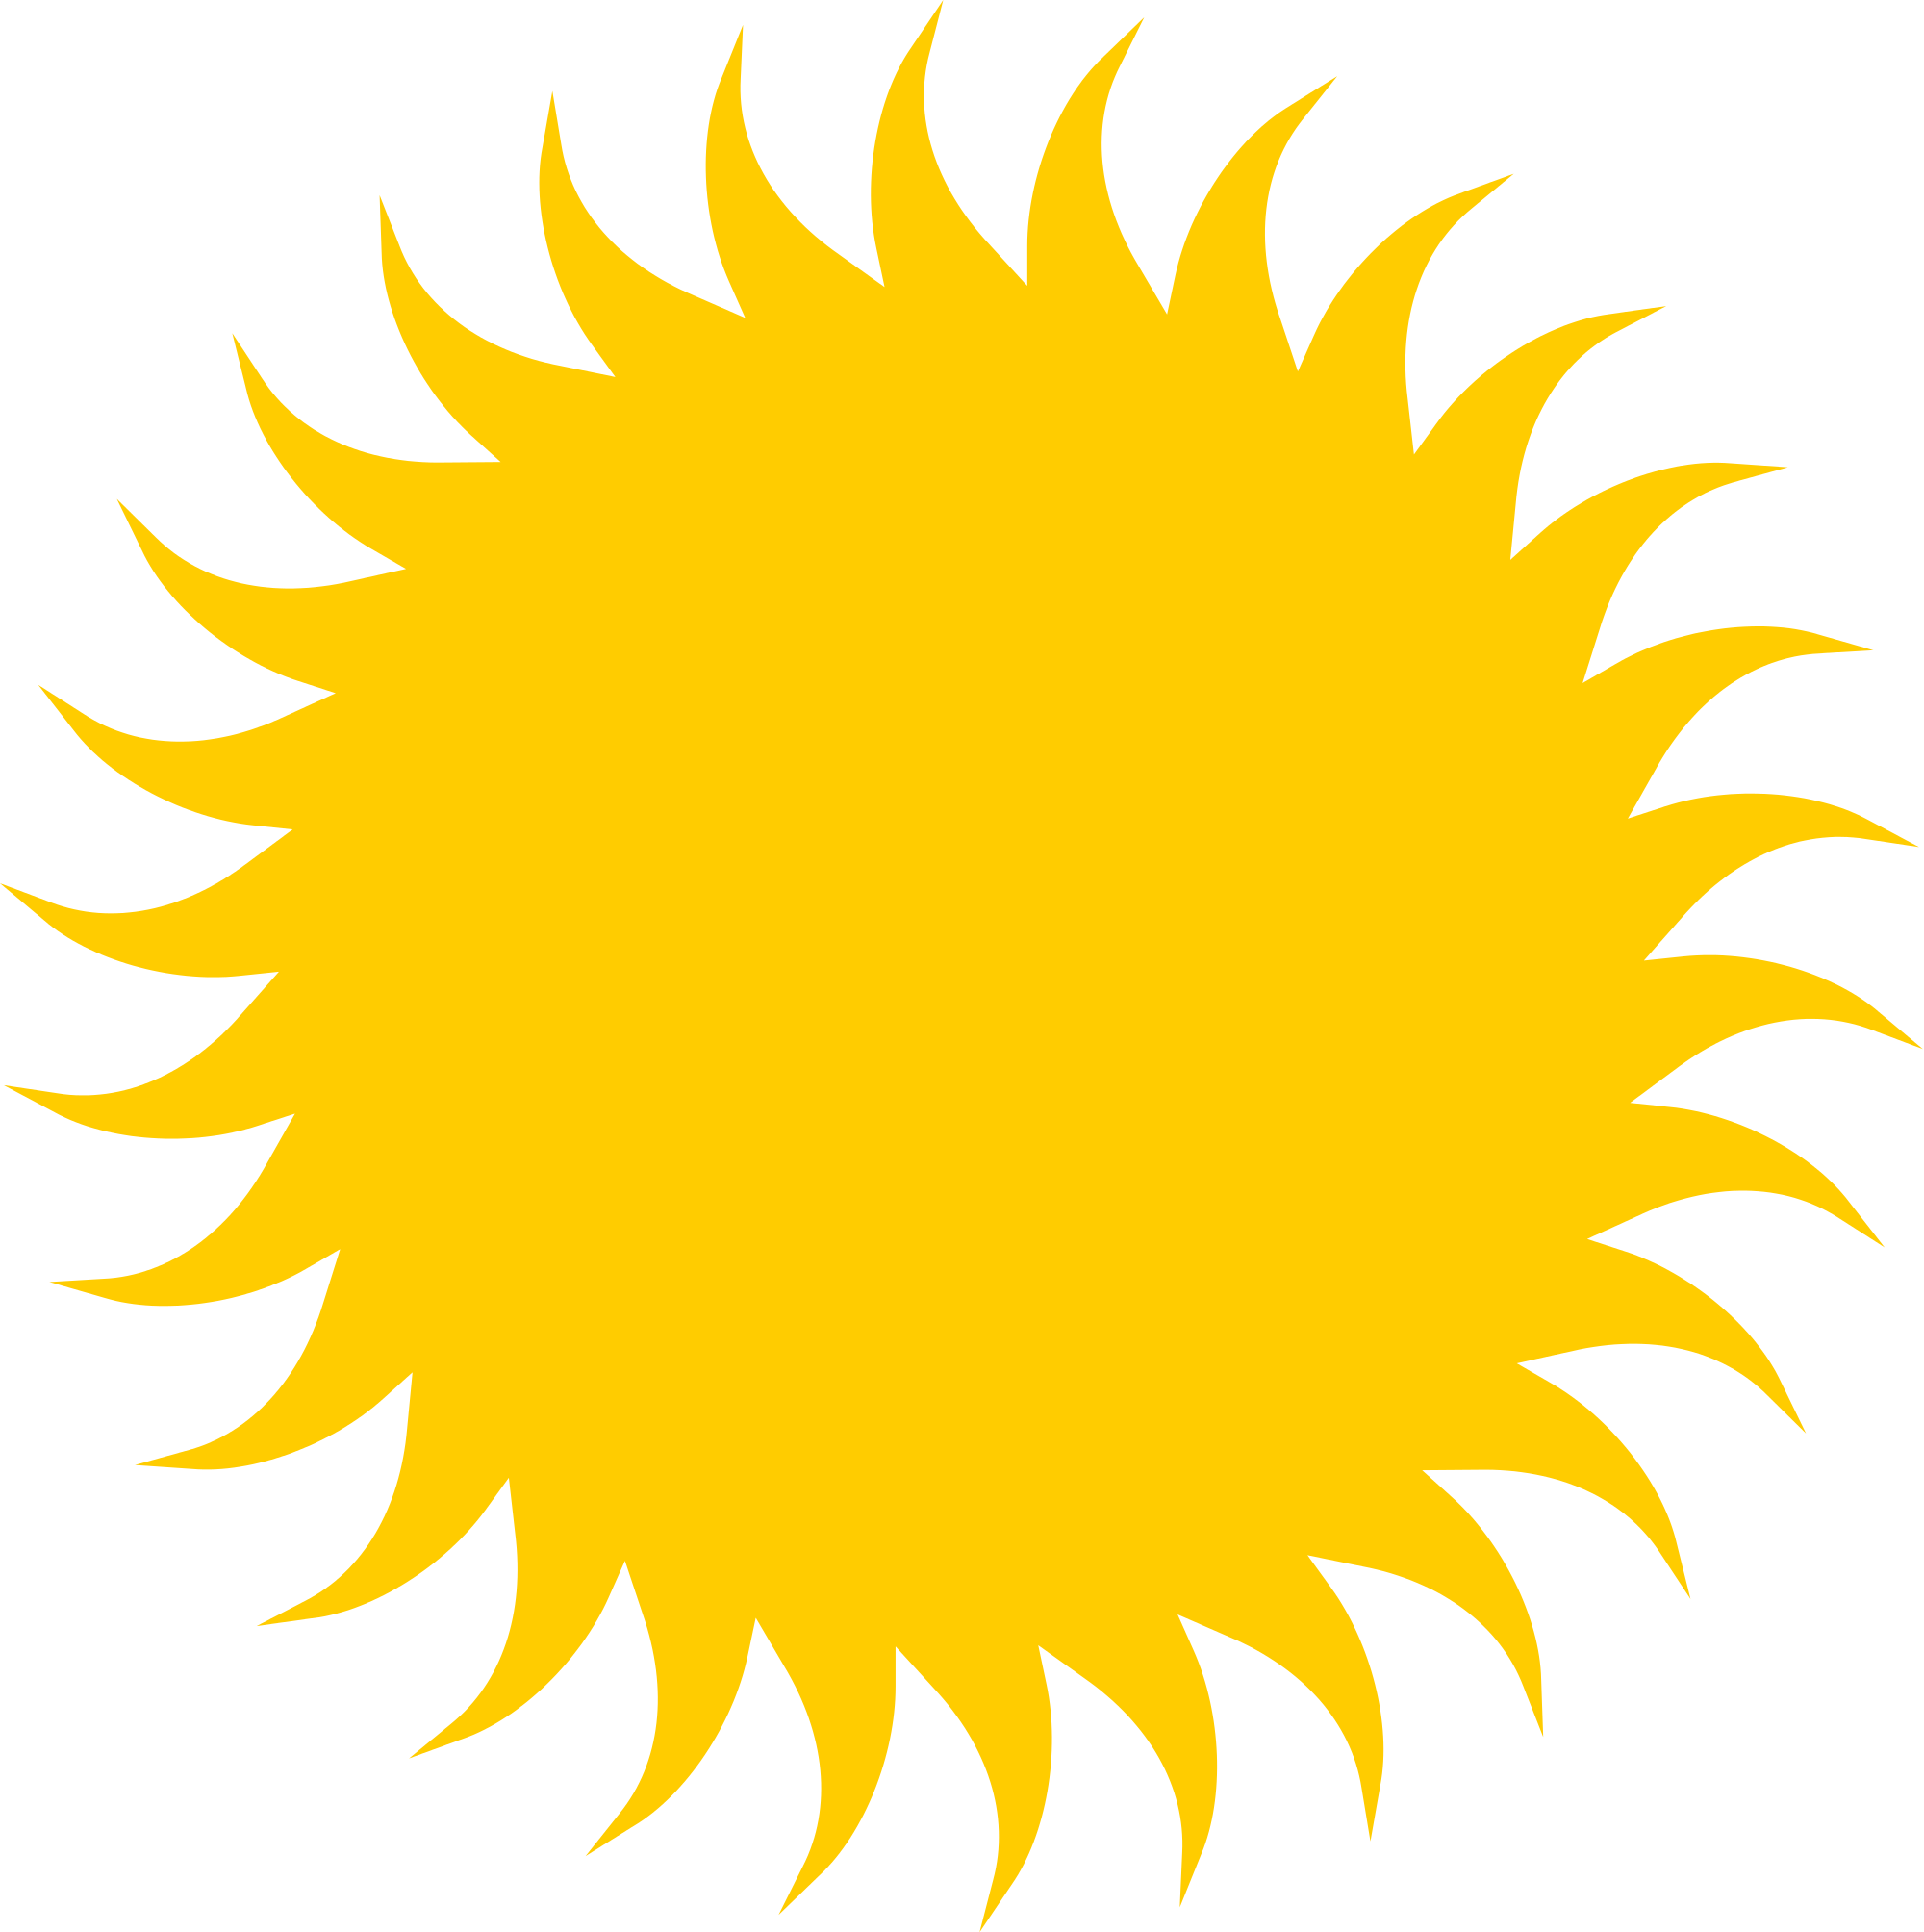 File:Sun icon.svg - Wikimedia Commons clipart freeuse download